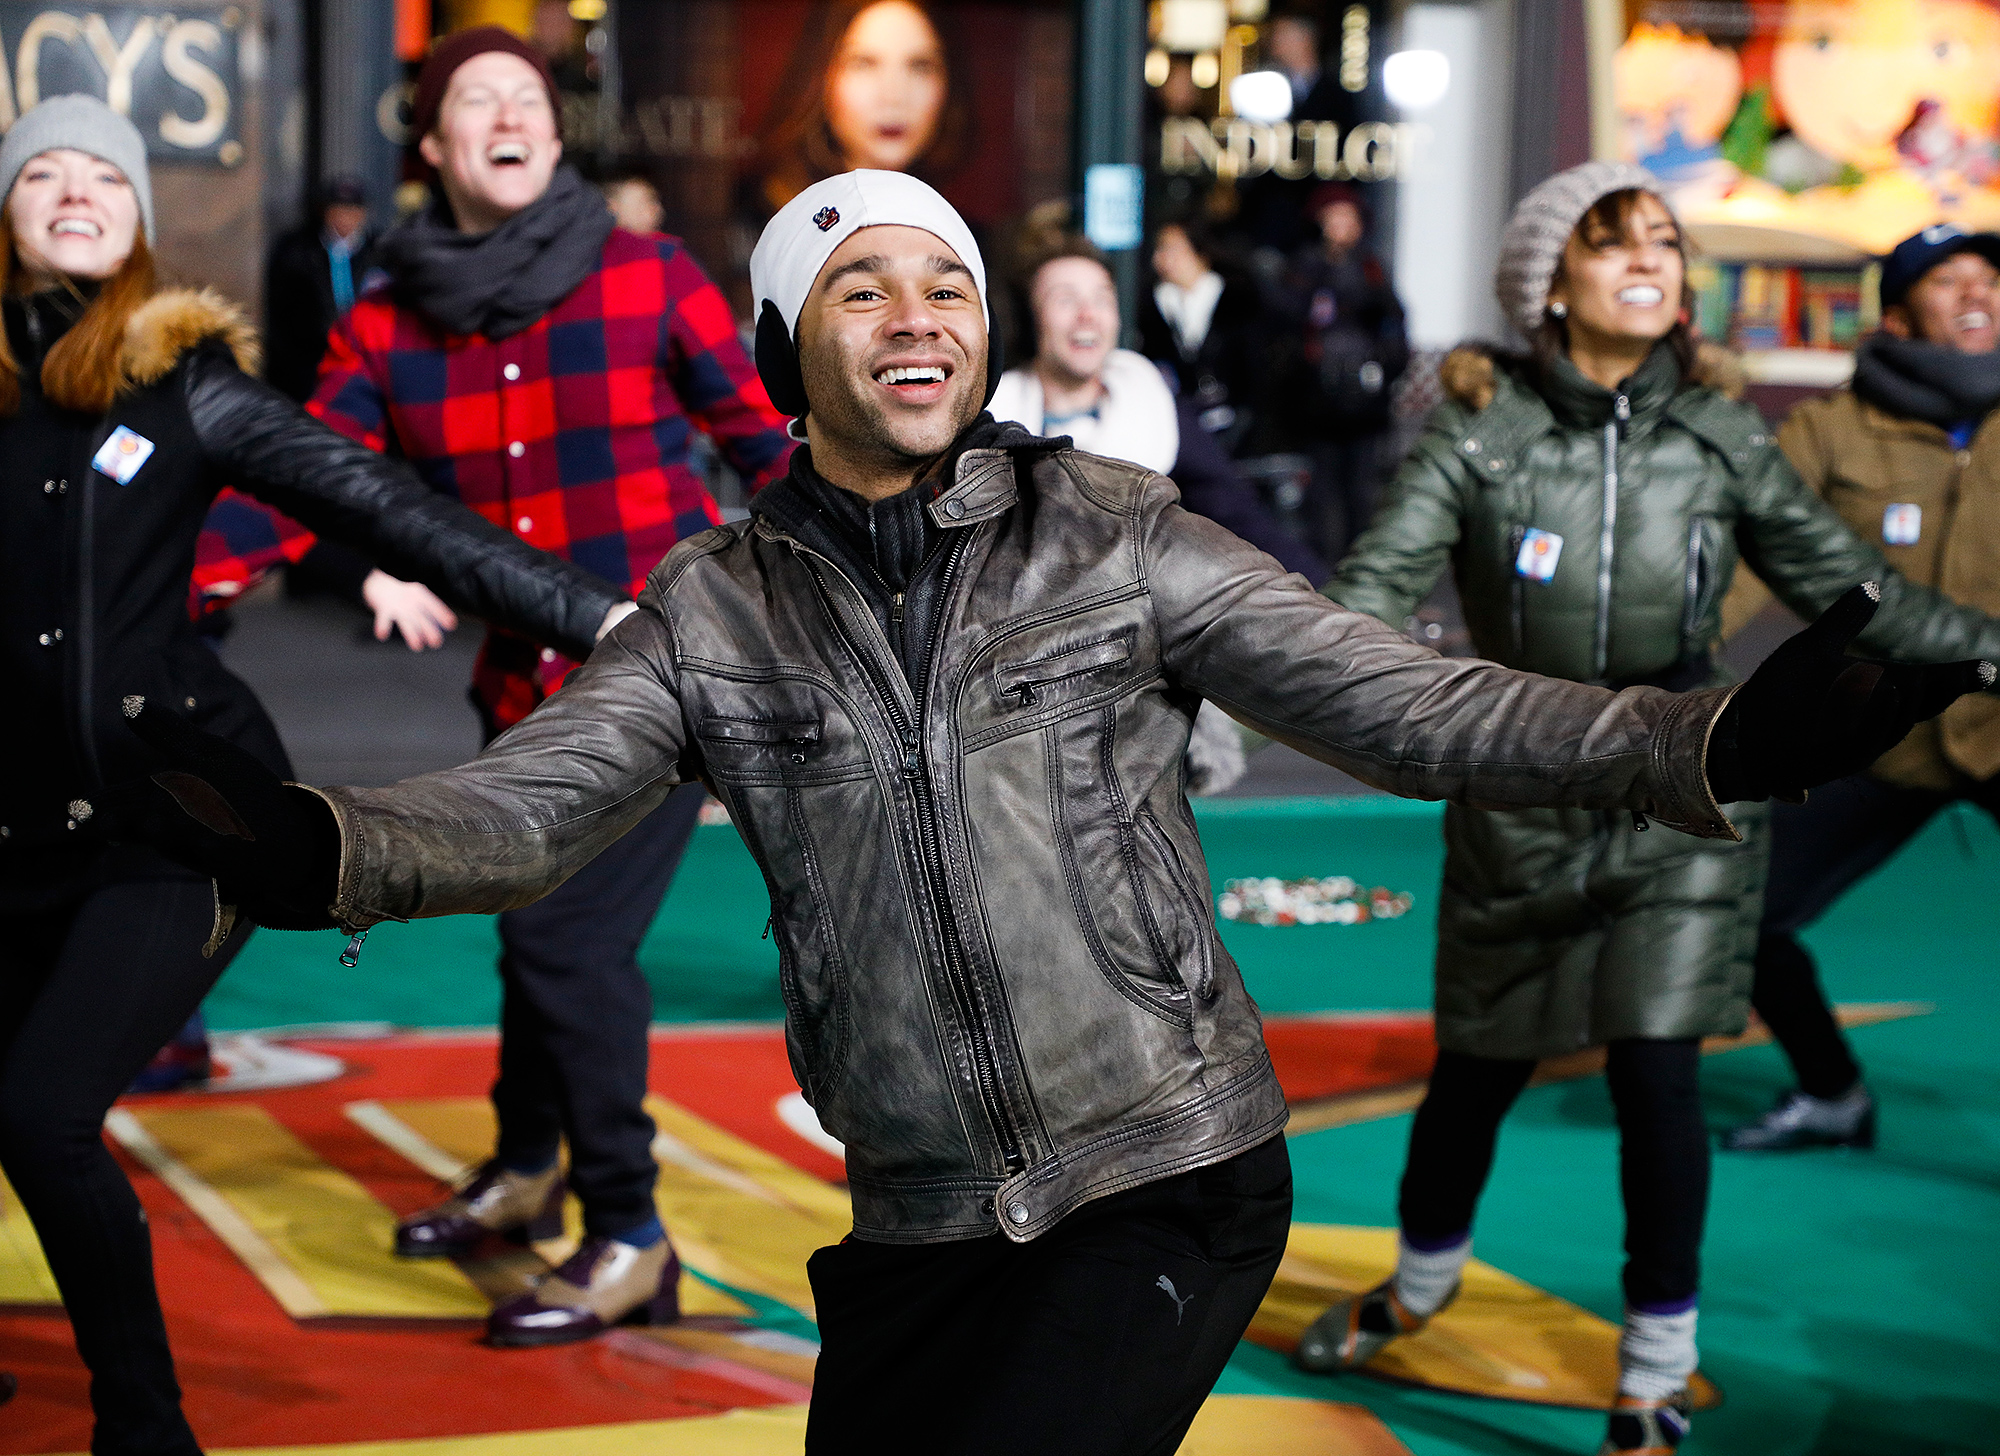 90th Macy's Thanksgiving Day Parade Rehearsals - Day 1